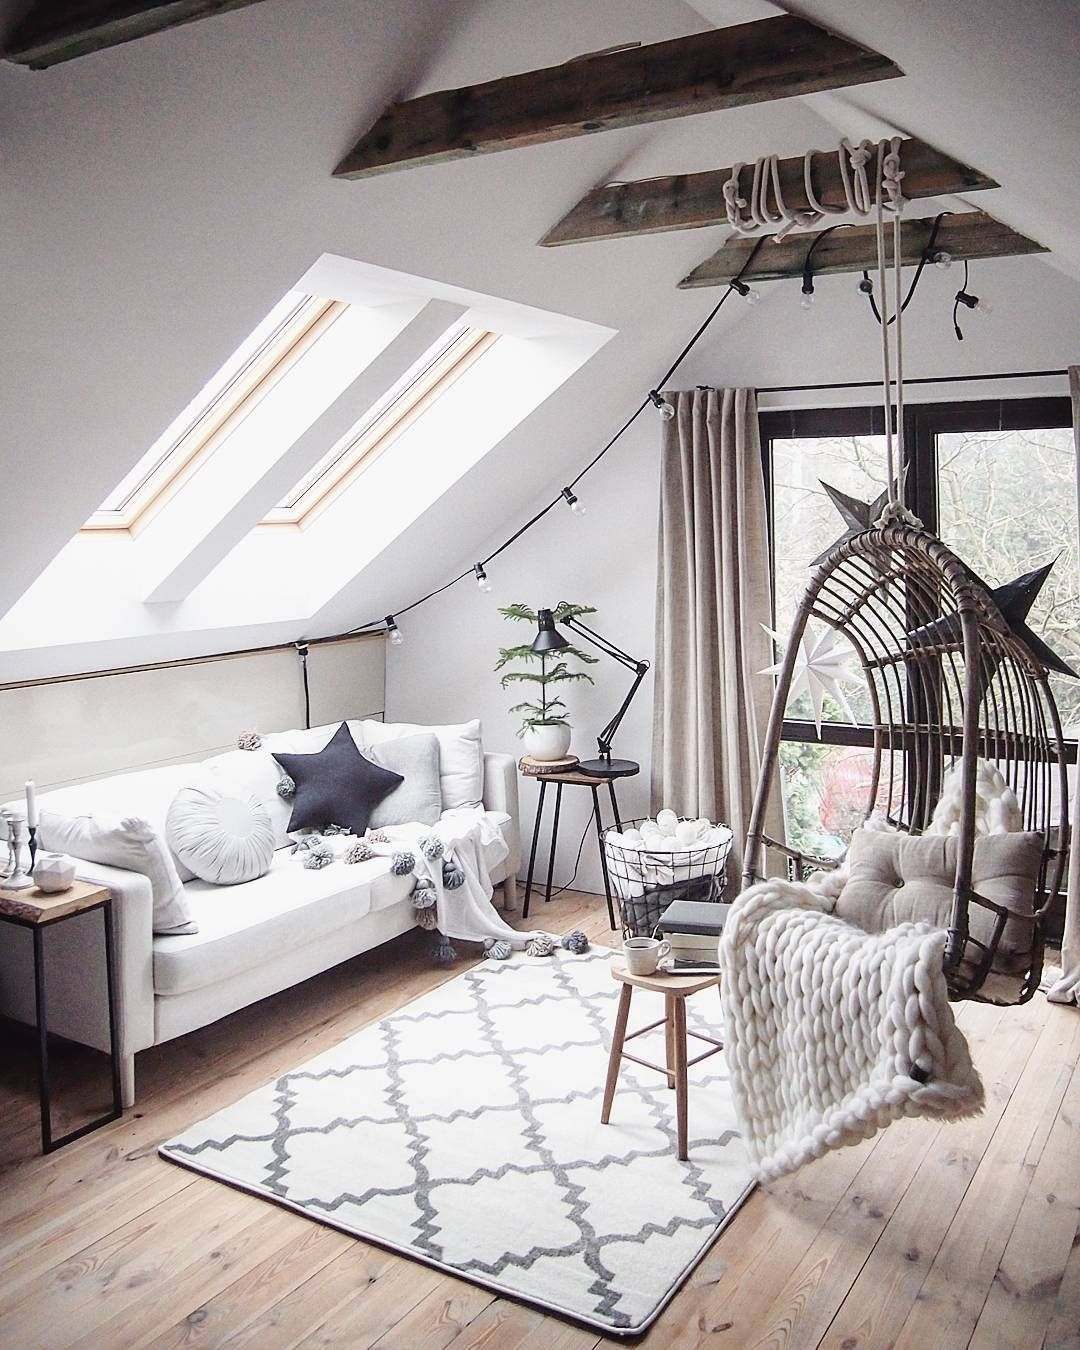 Love This Interior So Much Light And Space Talinegabriel 16k